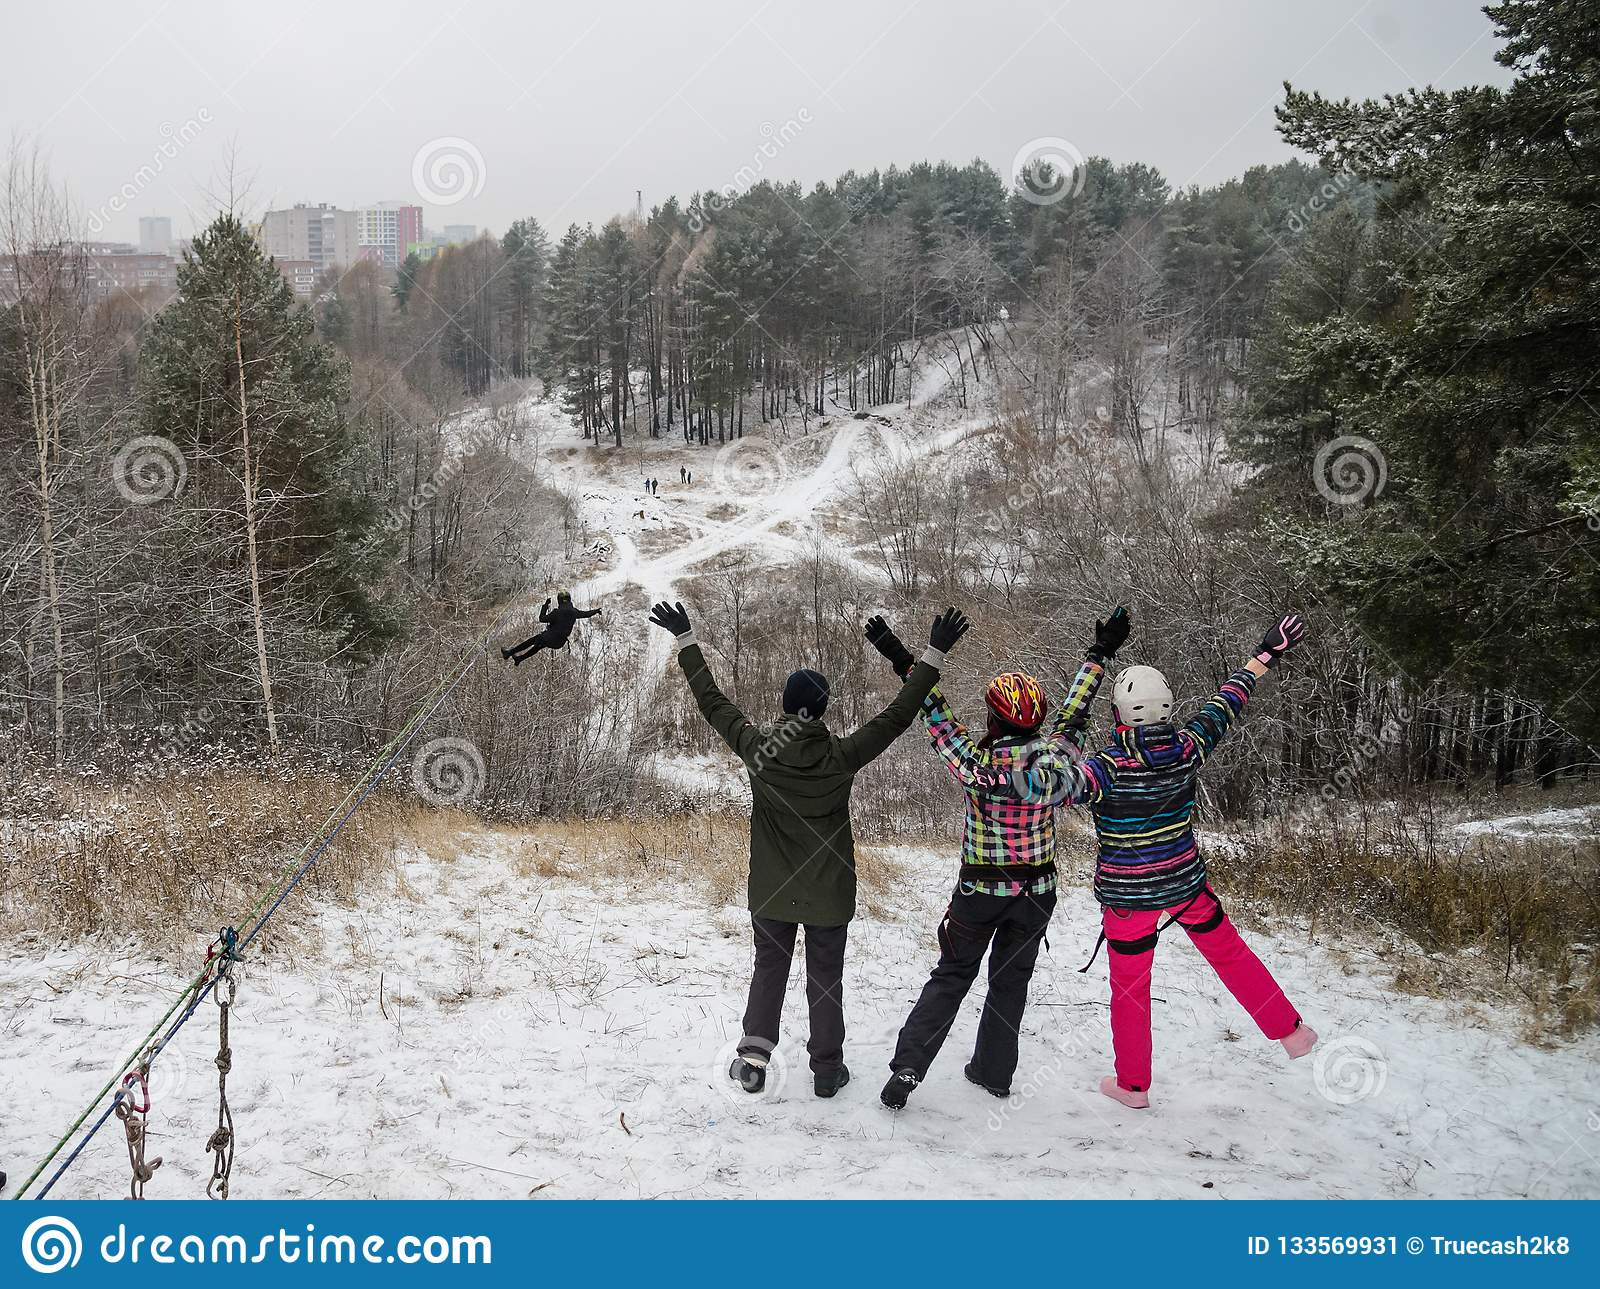 Riding on rope trolley Track in winter. People having fun together. Extreme and active lifestyle.